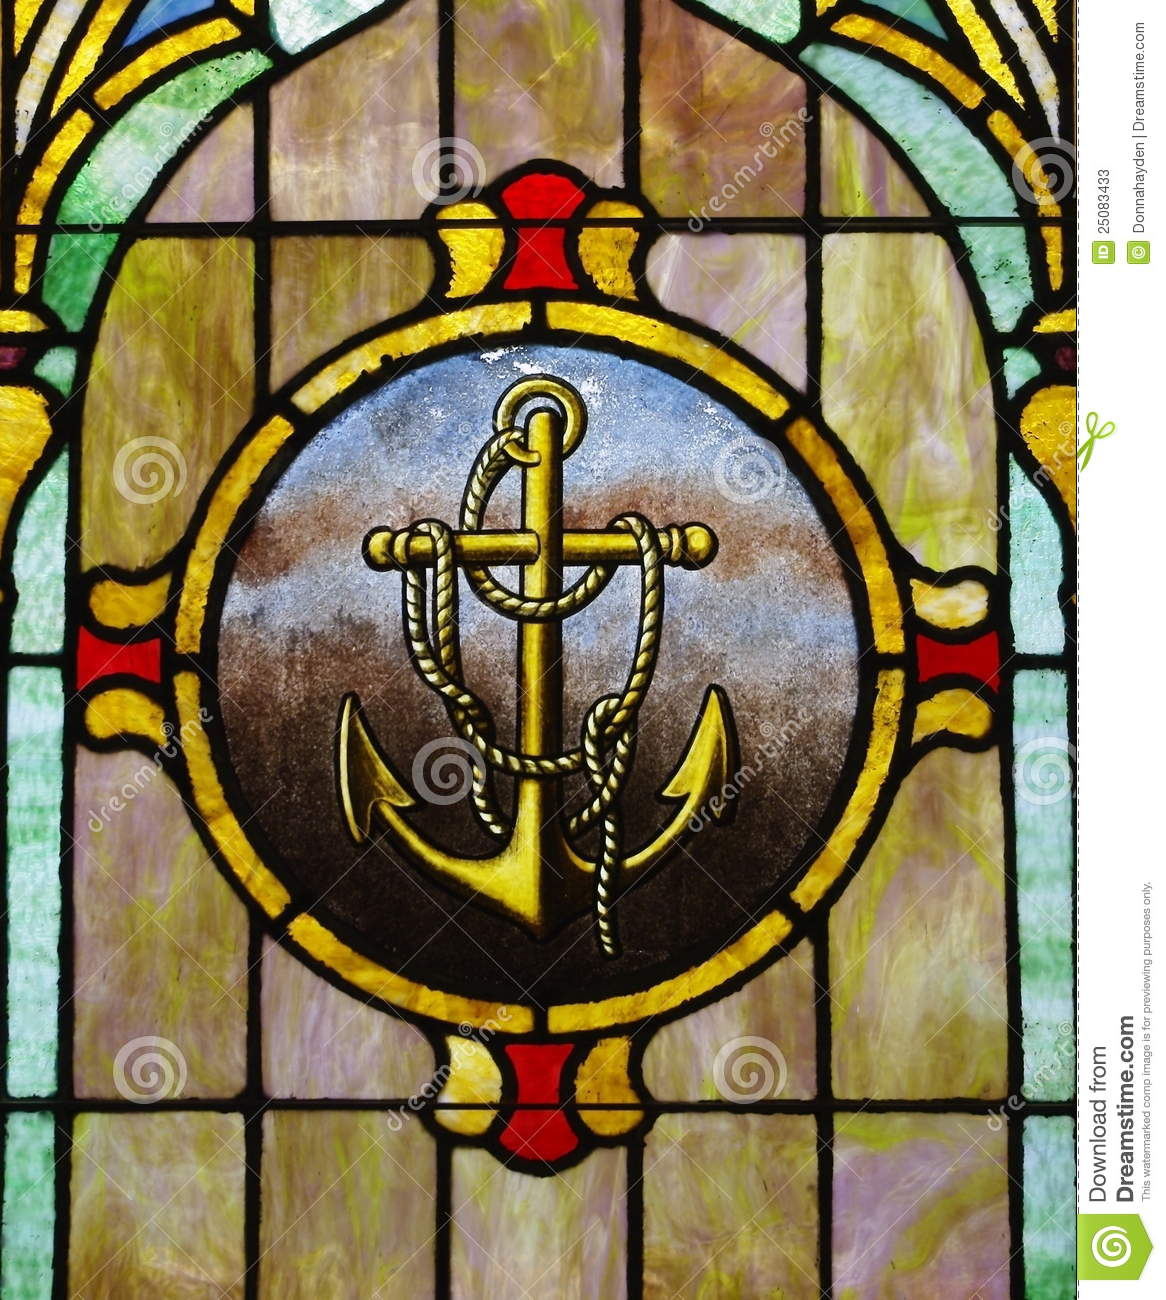 stained glass window anchor image stock image image. Black Bedroom Furniture Sets. Home Design Ideas